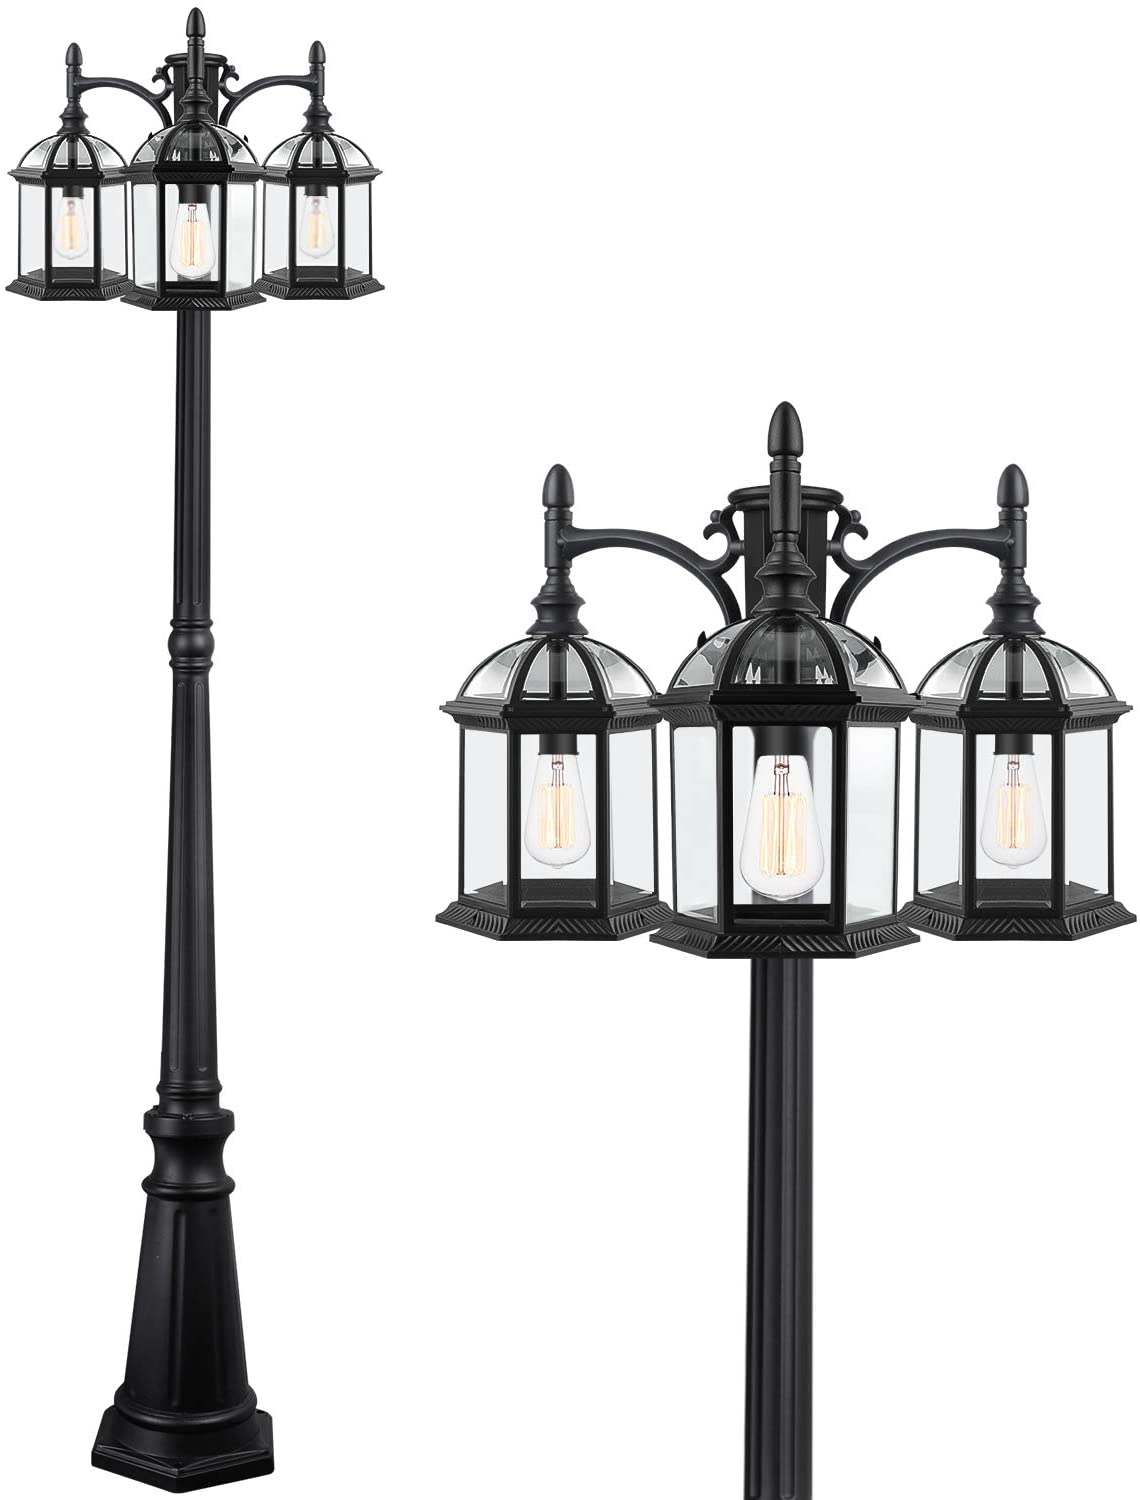 PARTPHONER 3-Head Outdoor Lamp Post Light Birdcage, Waterproof Outside Black Street Light Pole with Clear Glass Shade for Yard, Garden, Patio, Path, Driveway